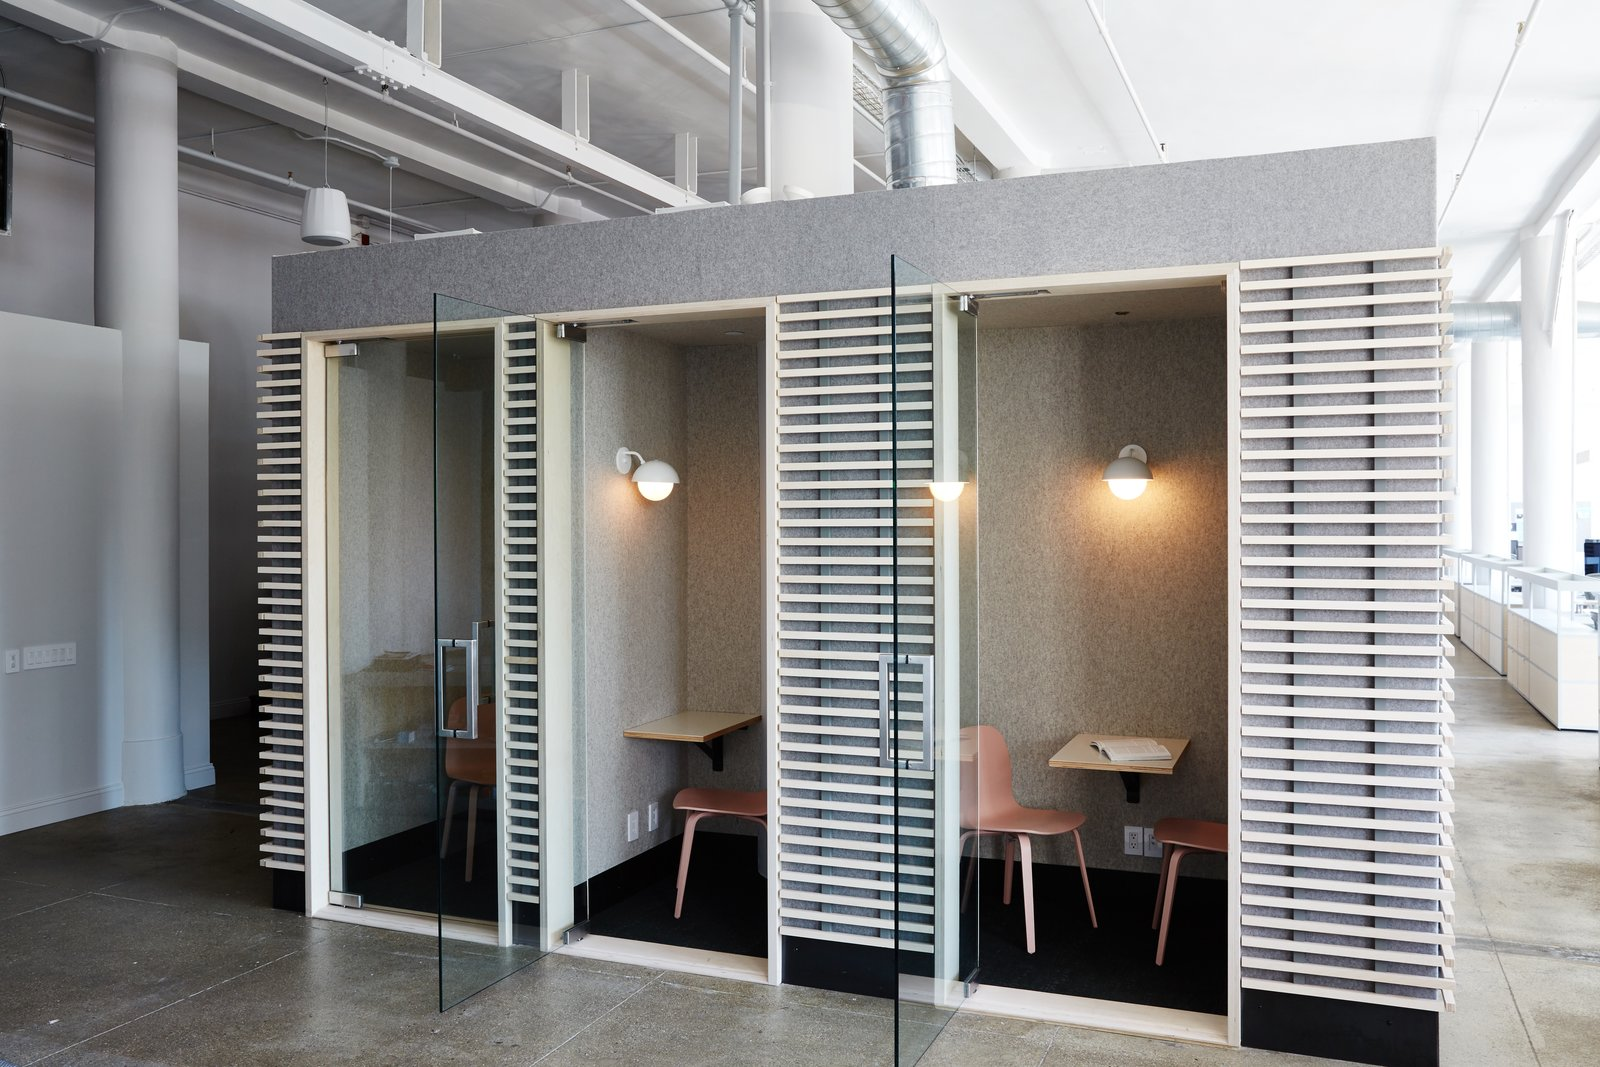 Pink Muuto Visu Chairs invite employees into the phone rooms while Dome Sconces by Allied Maker provide gentle light. The felt-wrapped rooms with bleached plywood slats are one of Murphy's favorite features.  Photo 5 of 12 in Space to Work, Room to Play